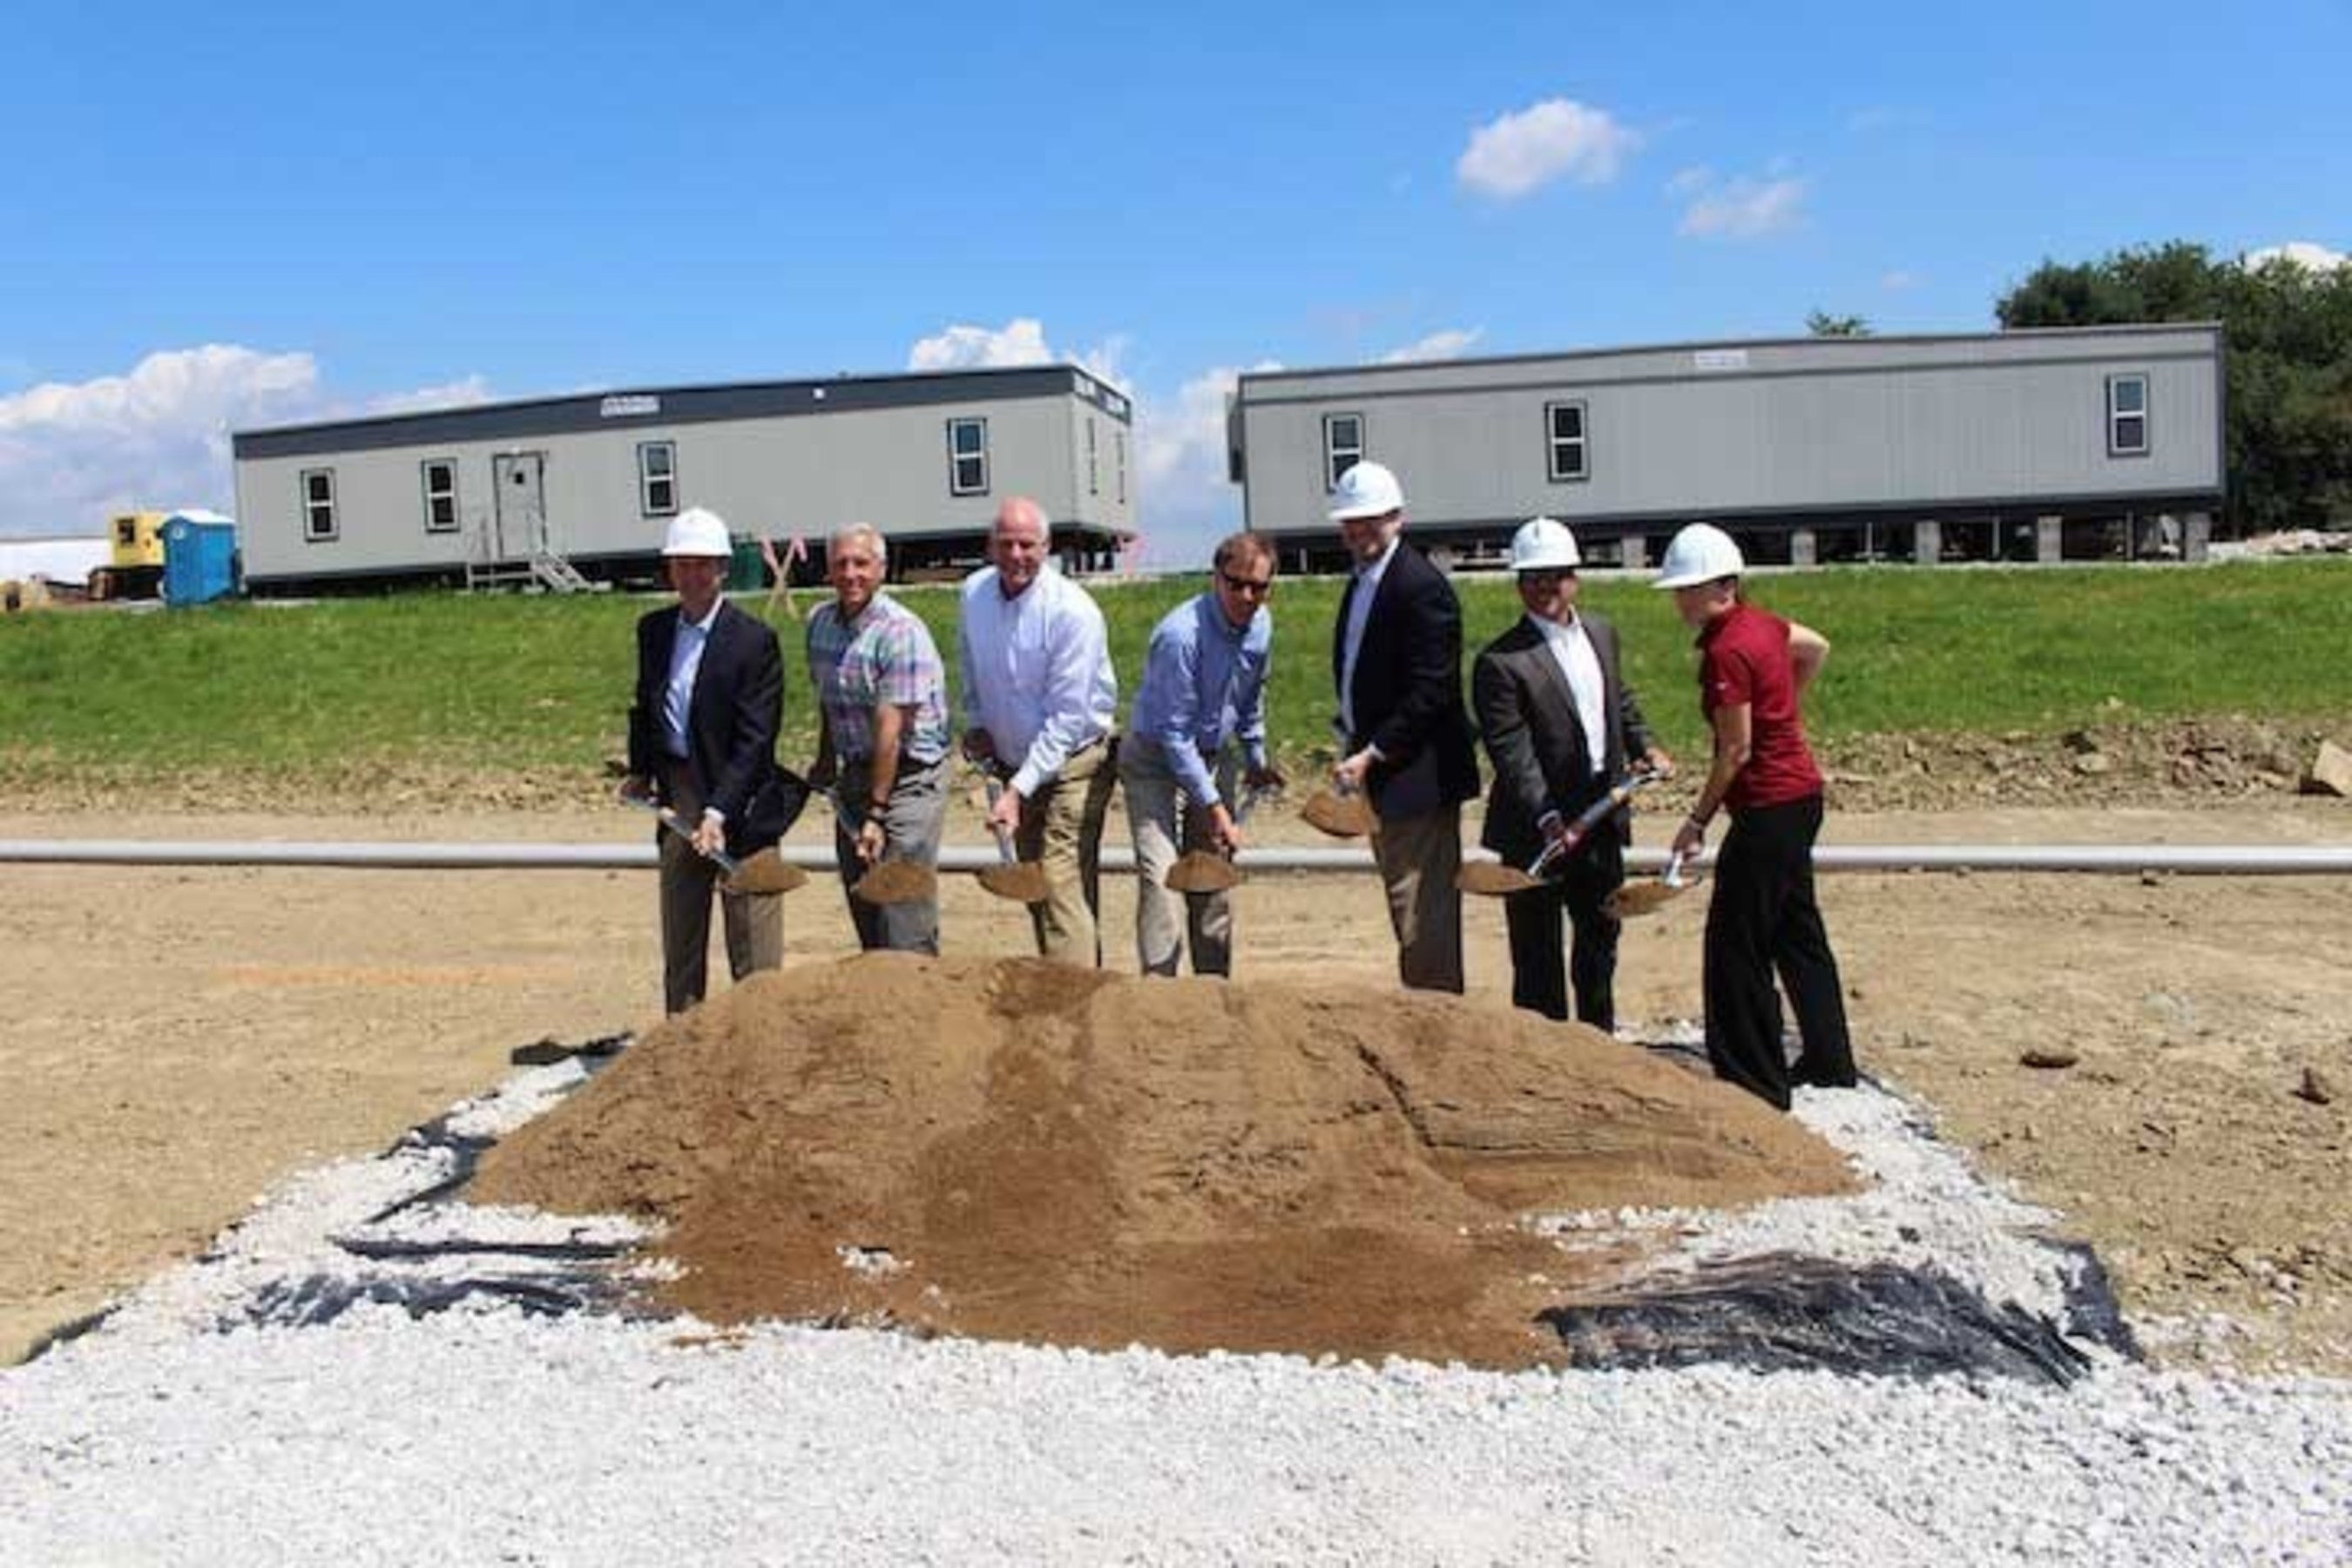 Bechtel Breaks Ground on New Combined-Cycle Power Plant in Ohio. Carroll County Natural Gas-Fired Facility to be one of Cleanest and Most Efficient in the US.